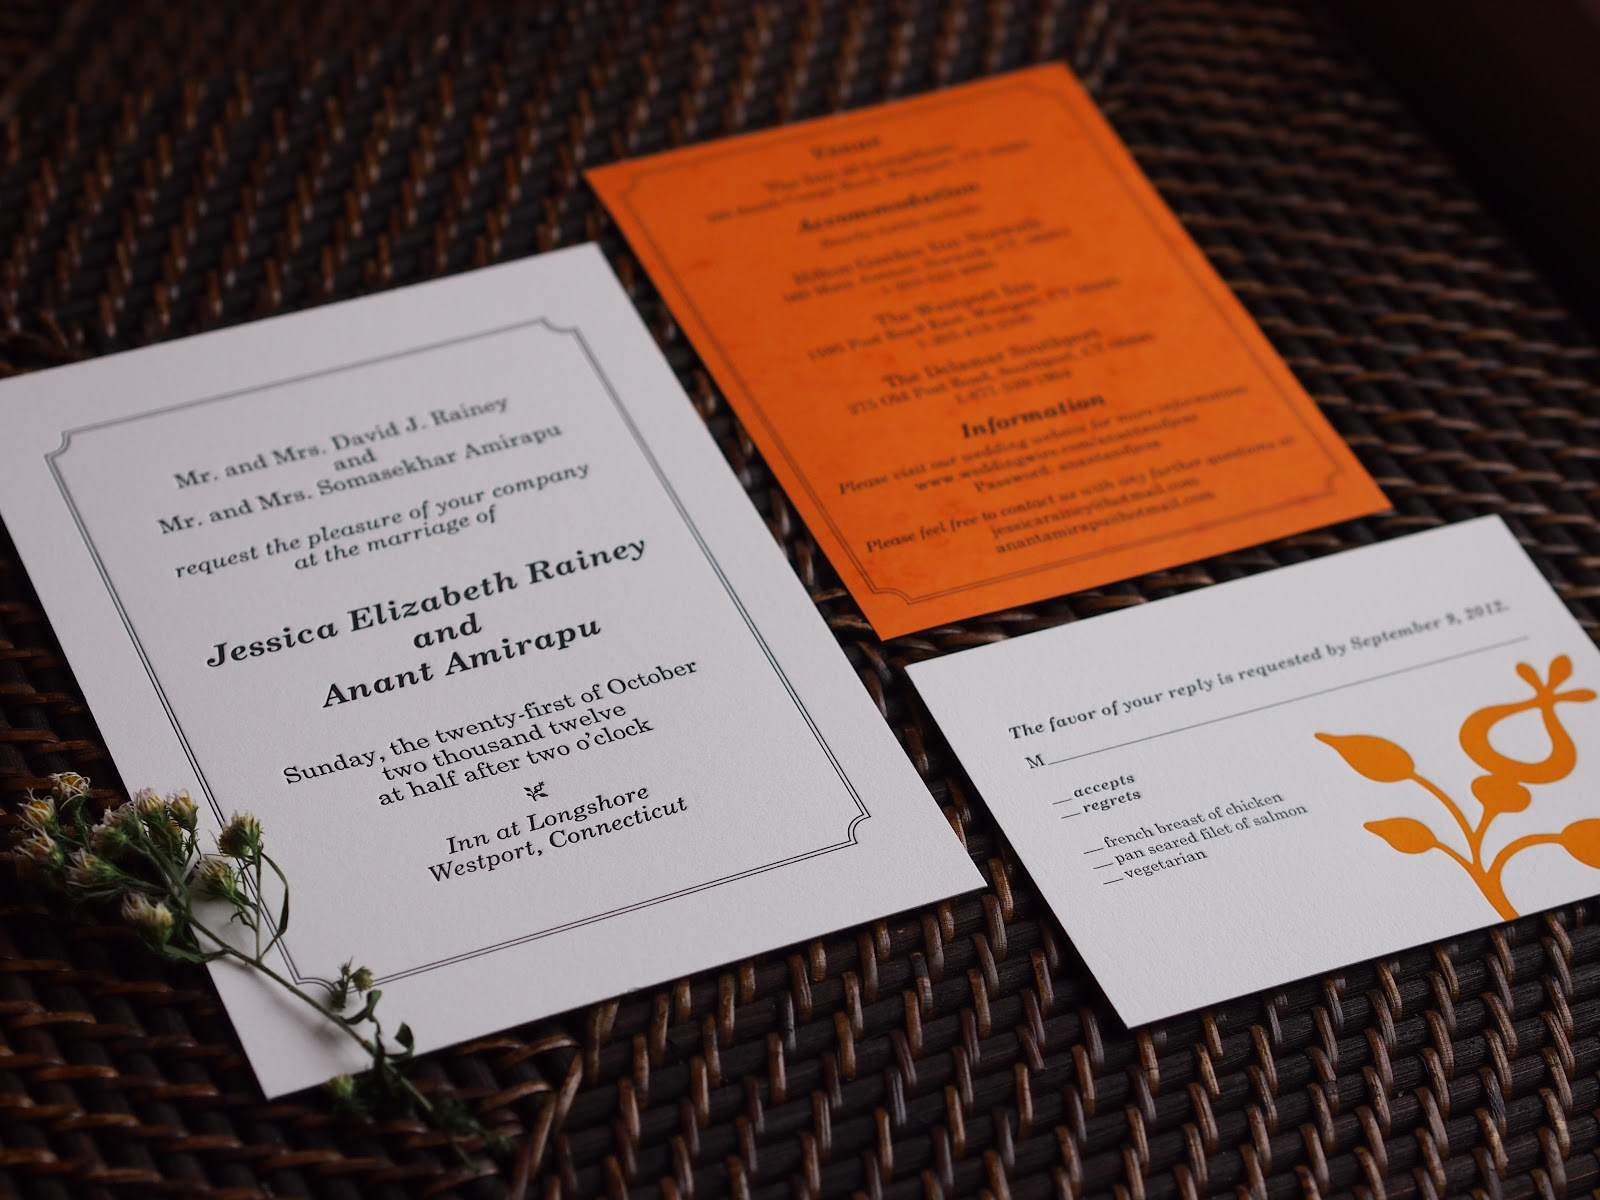 Erin B Dewalt : Wedding Invitations: Jessica & Anant\'s Simple Elegance